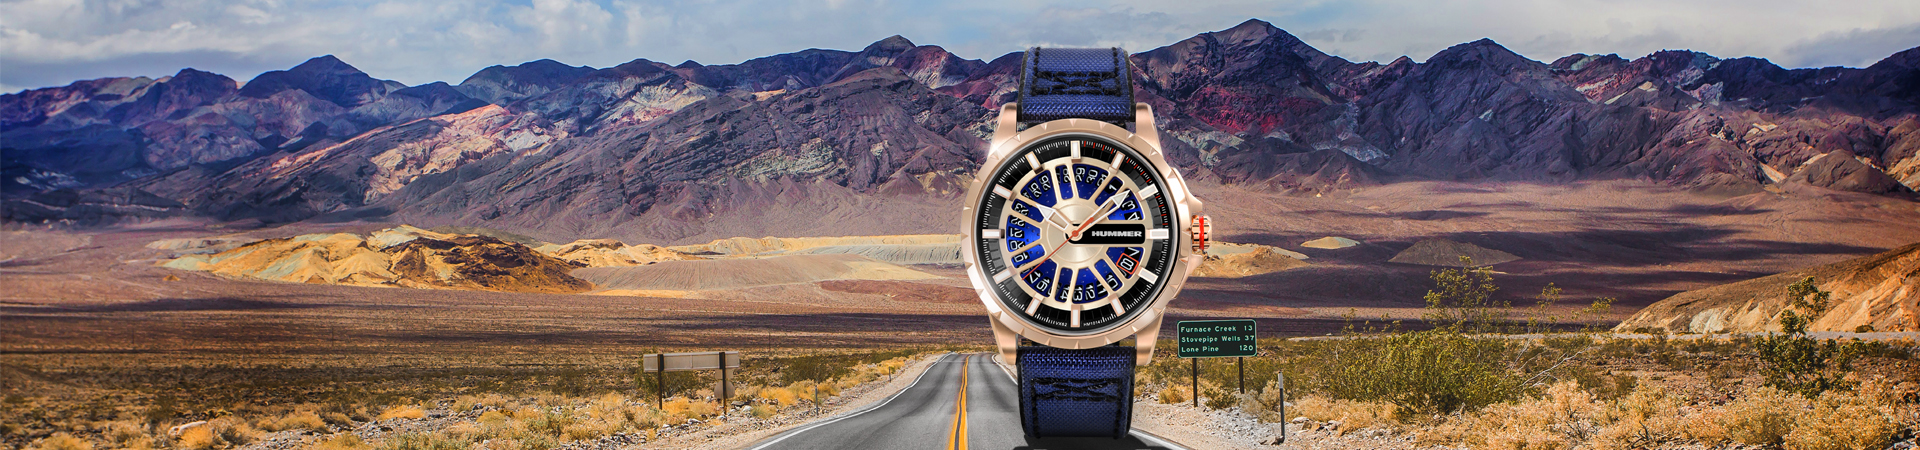 Hummer Watch Collection HM1014-1532